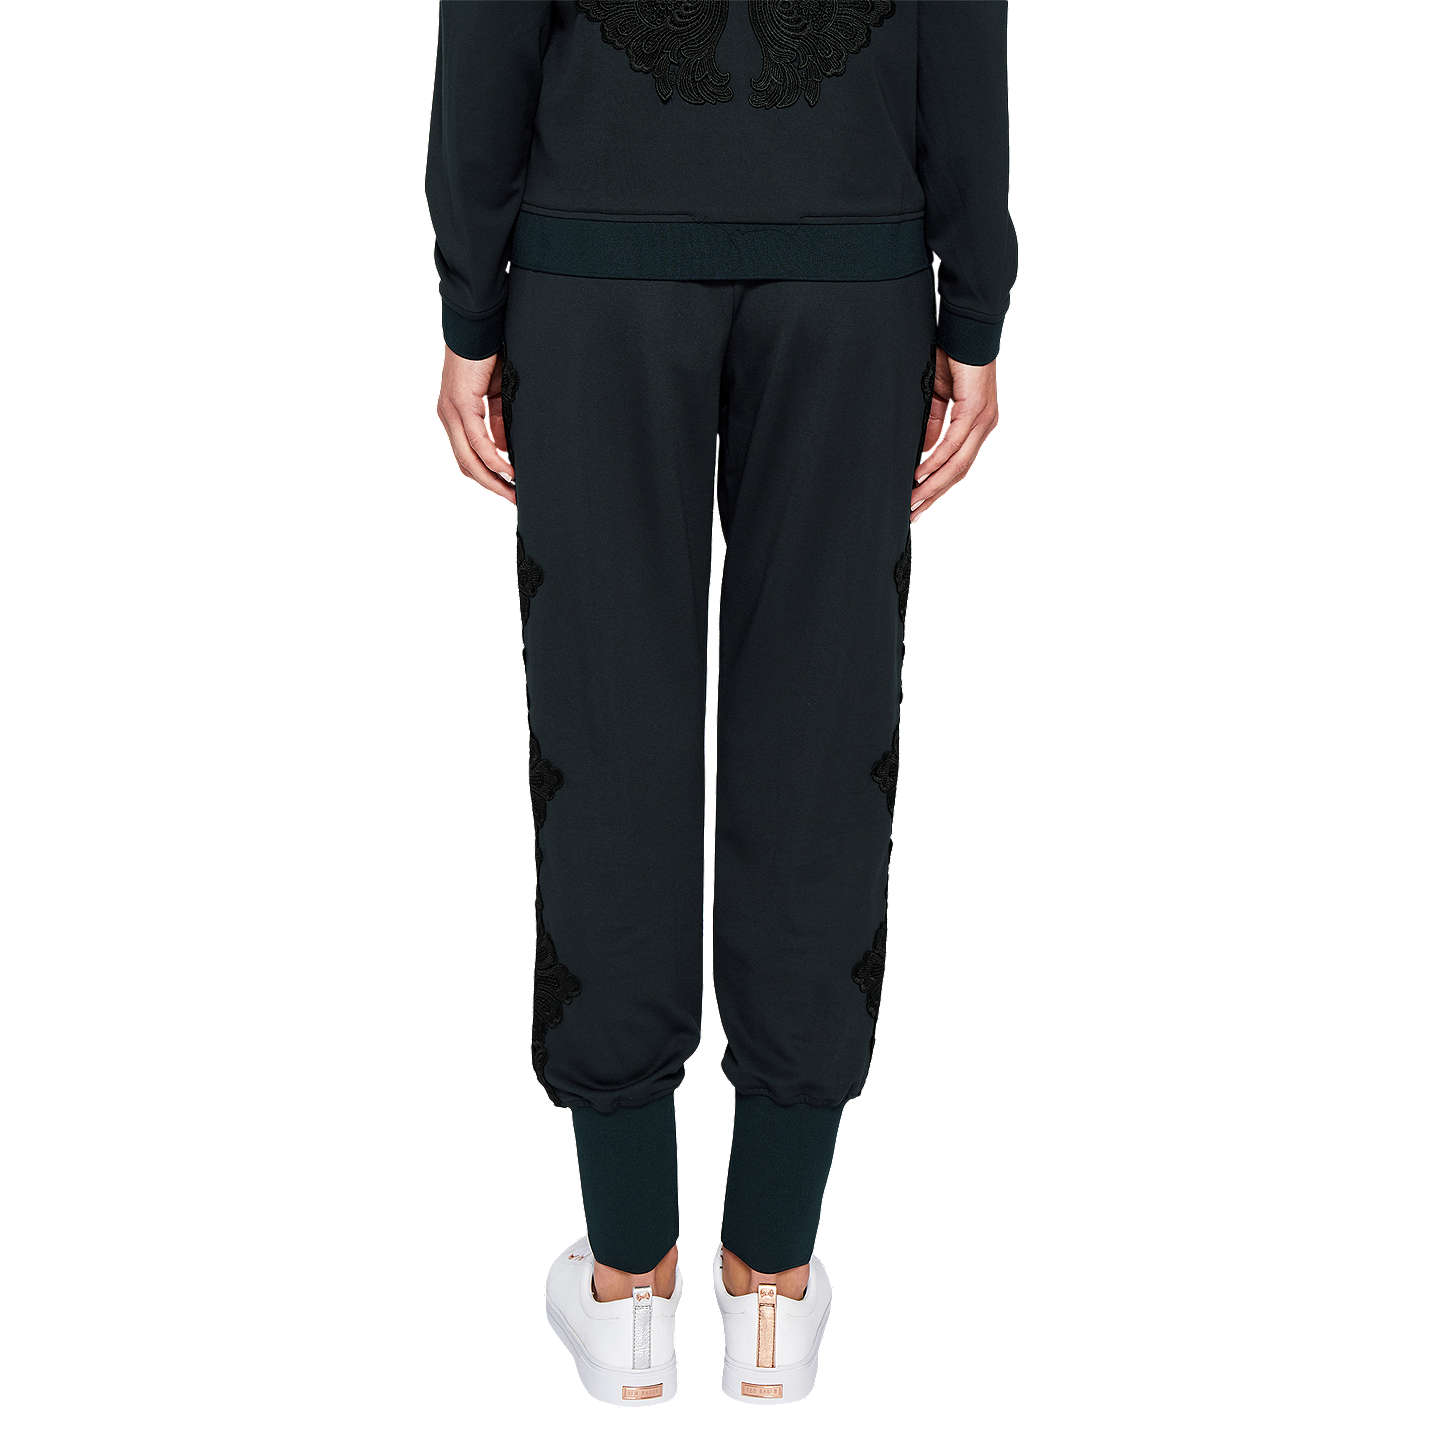 BuyTed Baker Ted Says Relax Lizeeba Lace Trim Joggers, Navy, 0 Online at johnlewis.com